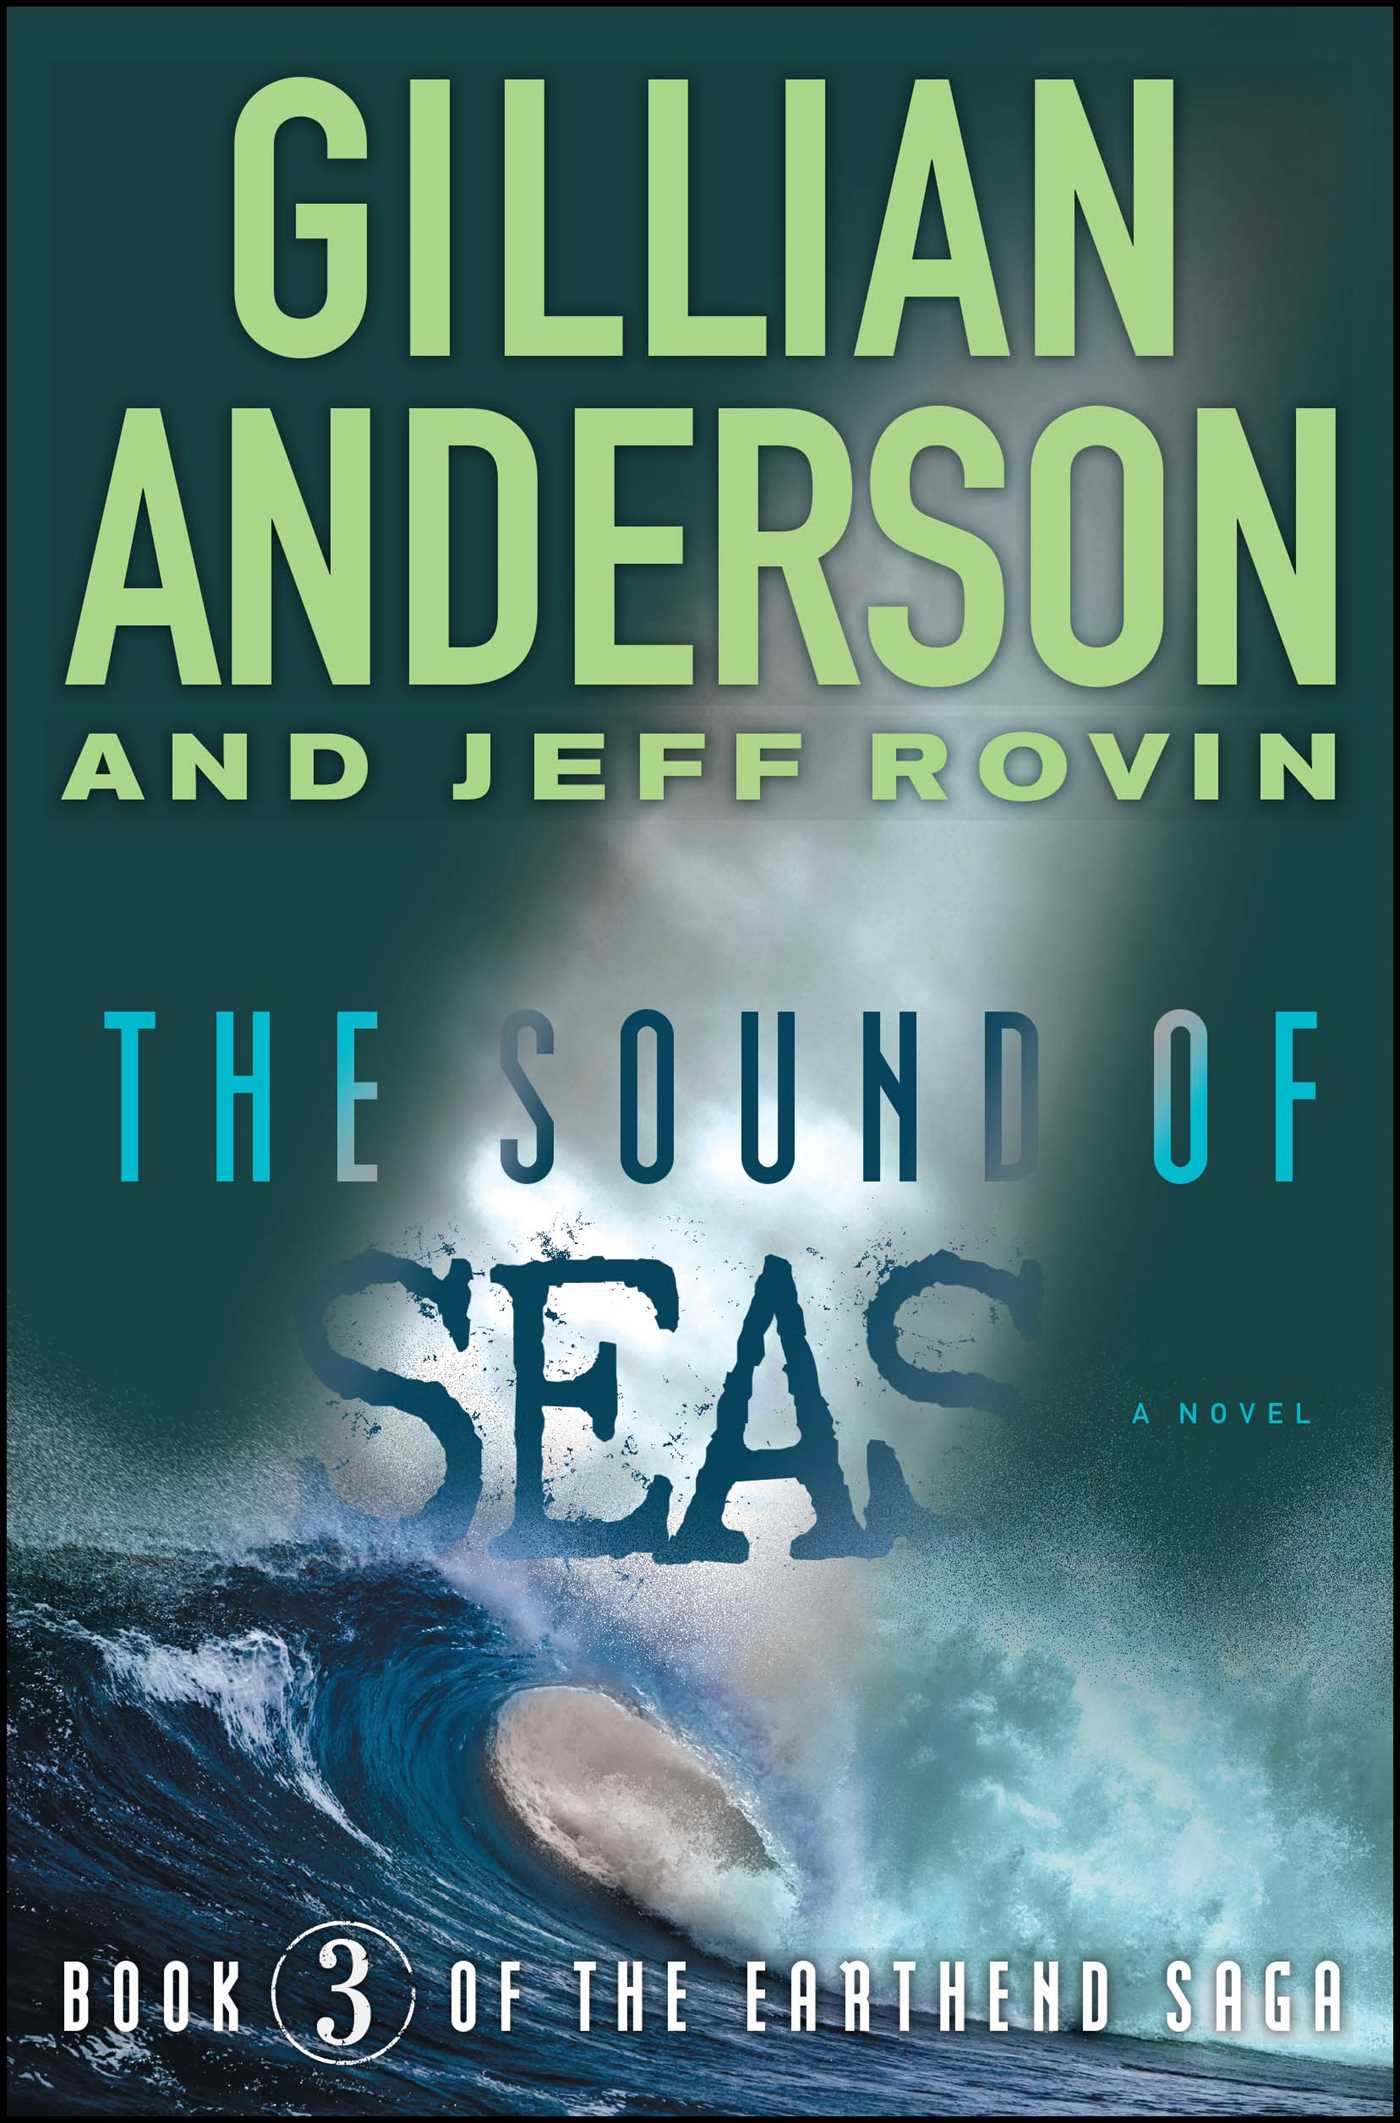 The sound of seas 9781476776606 hr